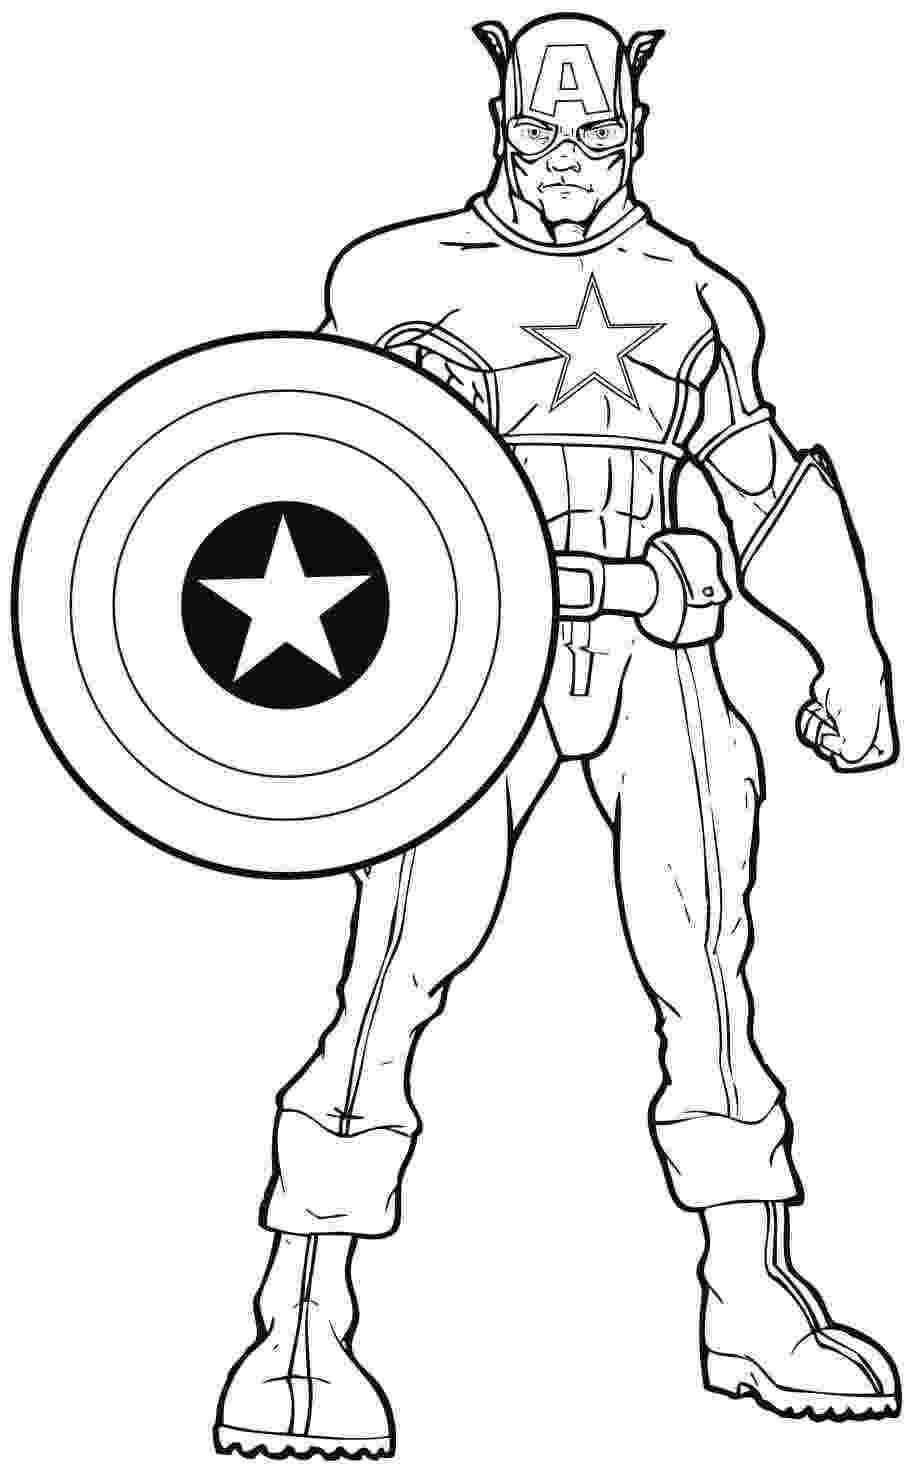 superhero color pages superhero coloring pages to download and print for free pages superhero color 1 1